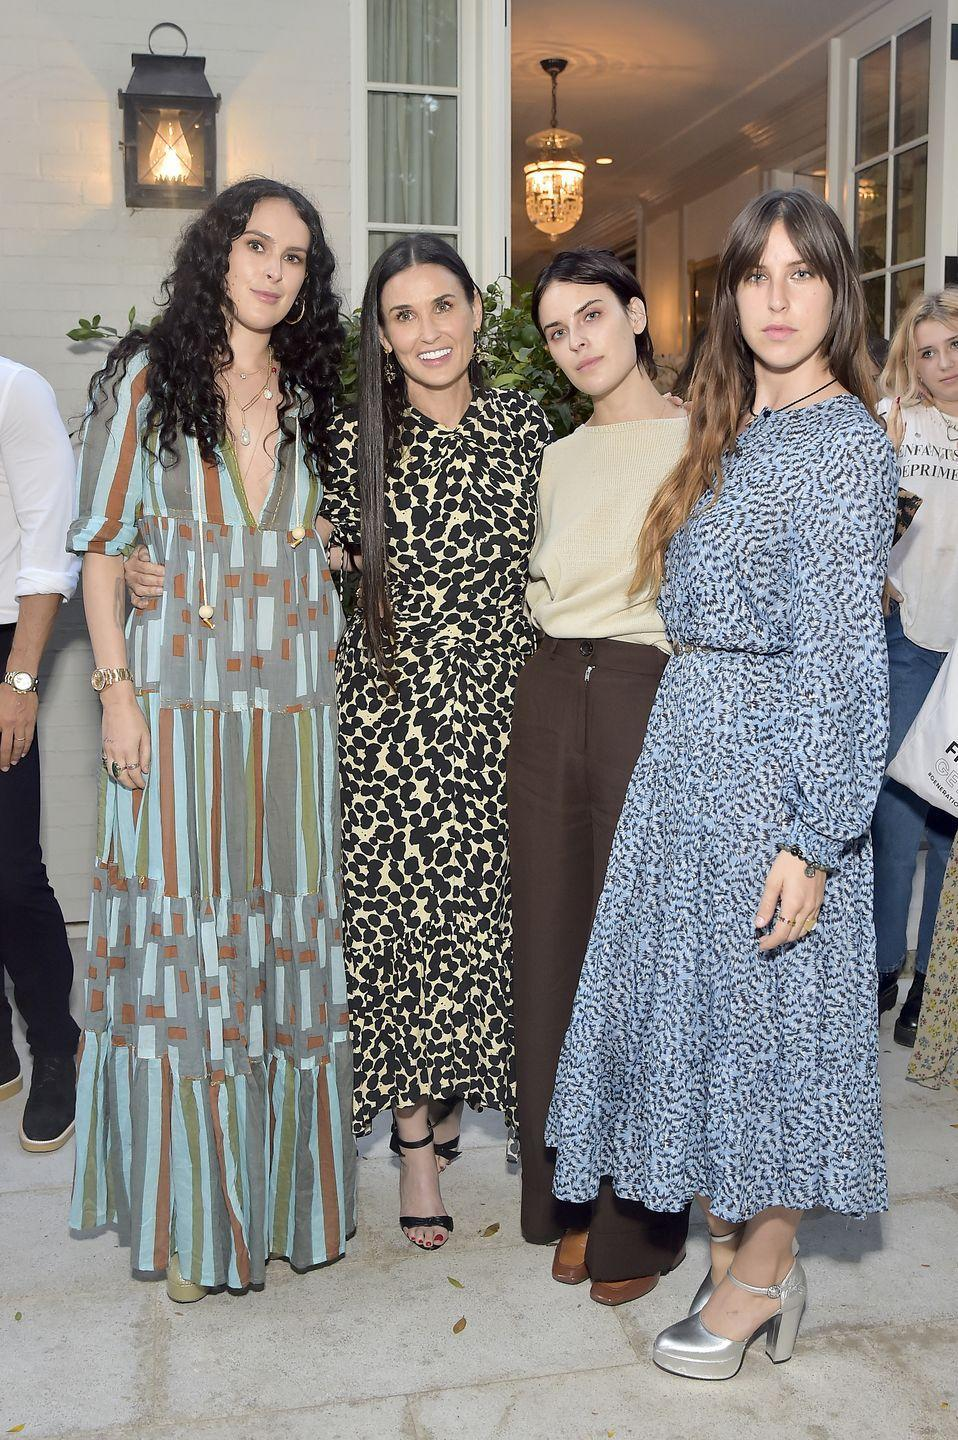 <p>The famous actress and her daughters look scarily similar with their sharp jawlines, high cheekbones and dark hair. </p><p>Earlier this summer, Rumer spoke openly about her struggles with self-esteem and body confidence growing up. Willis - who is the eldest daughter of actors Moore and Bruce Willis - said her classmates often called her 'potato head' and that she had a 'huge jaw'. </p>